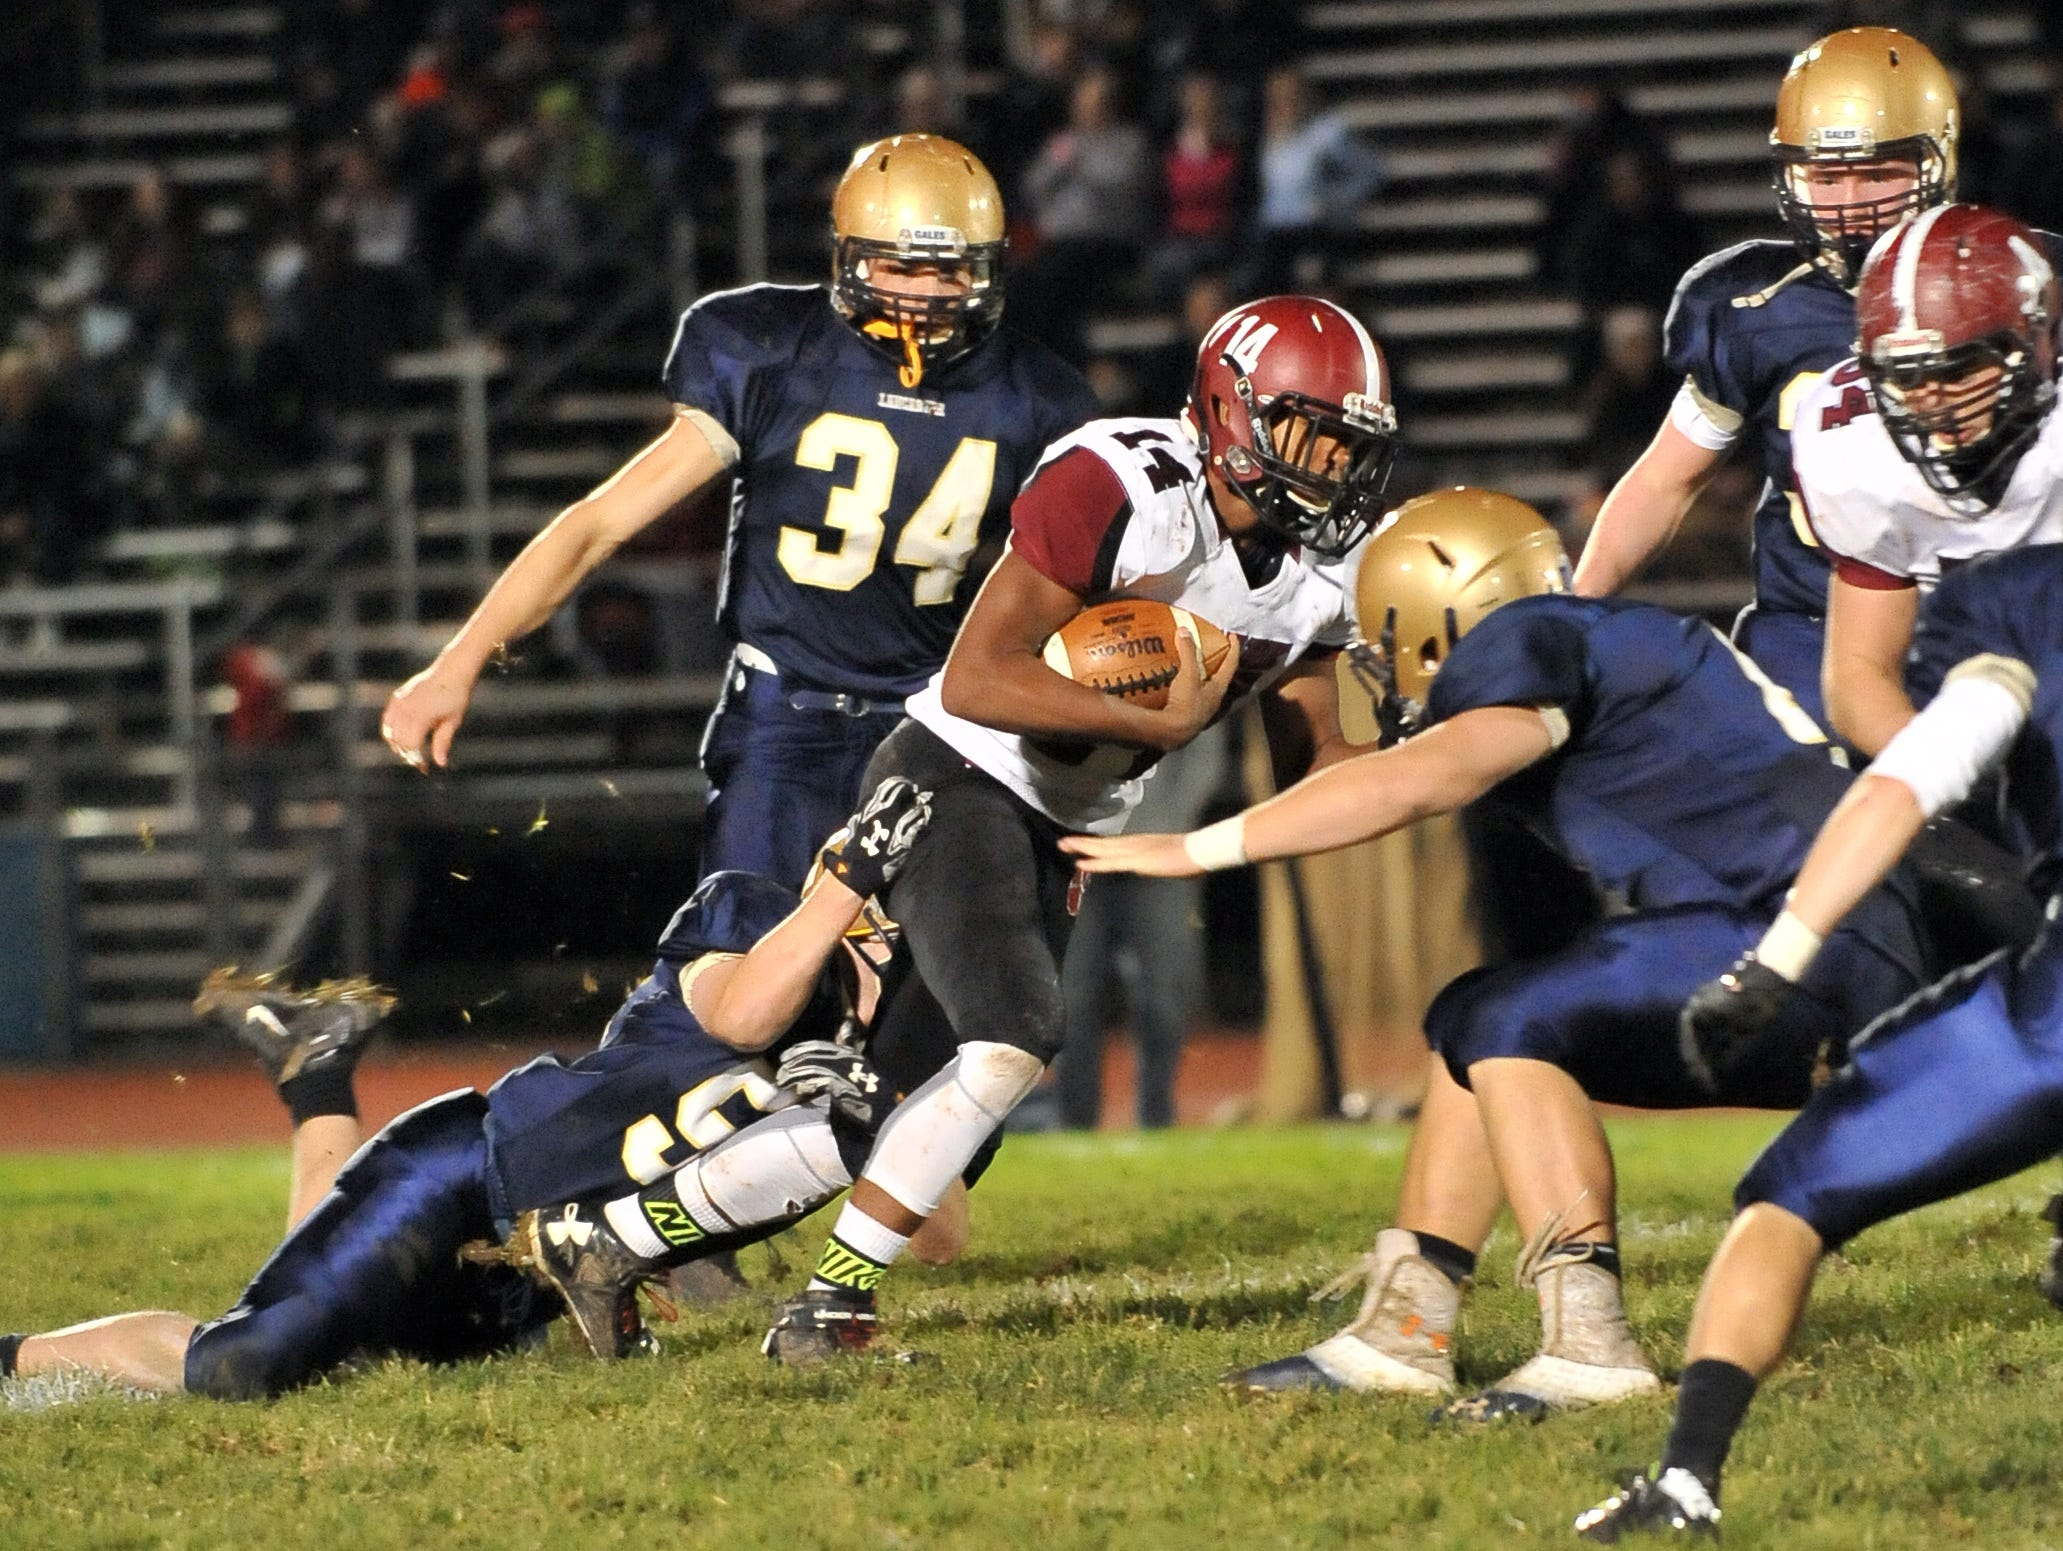 Newark's D'ante Woods is tackled by Lancaster's Ryan Roseberry during Friday night's game at Fulton Field in Lancaster. The Wildcats lost the game 38-7.